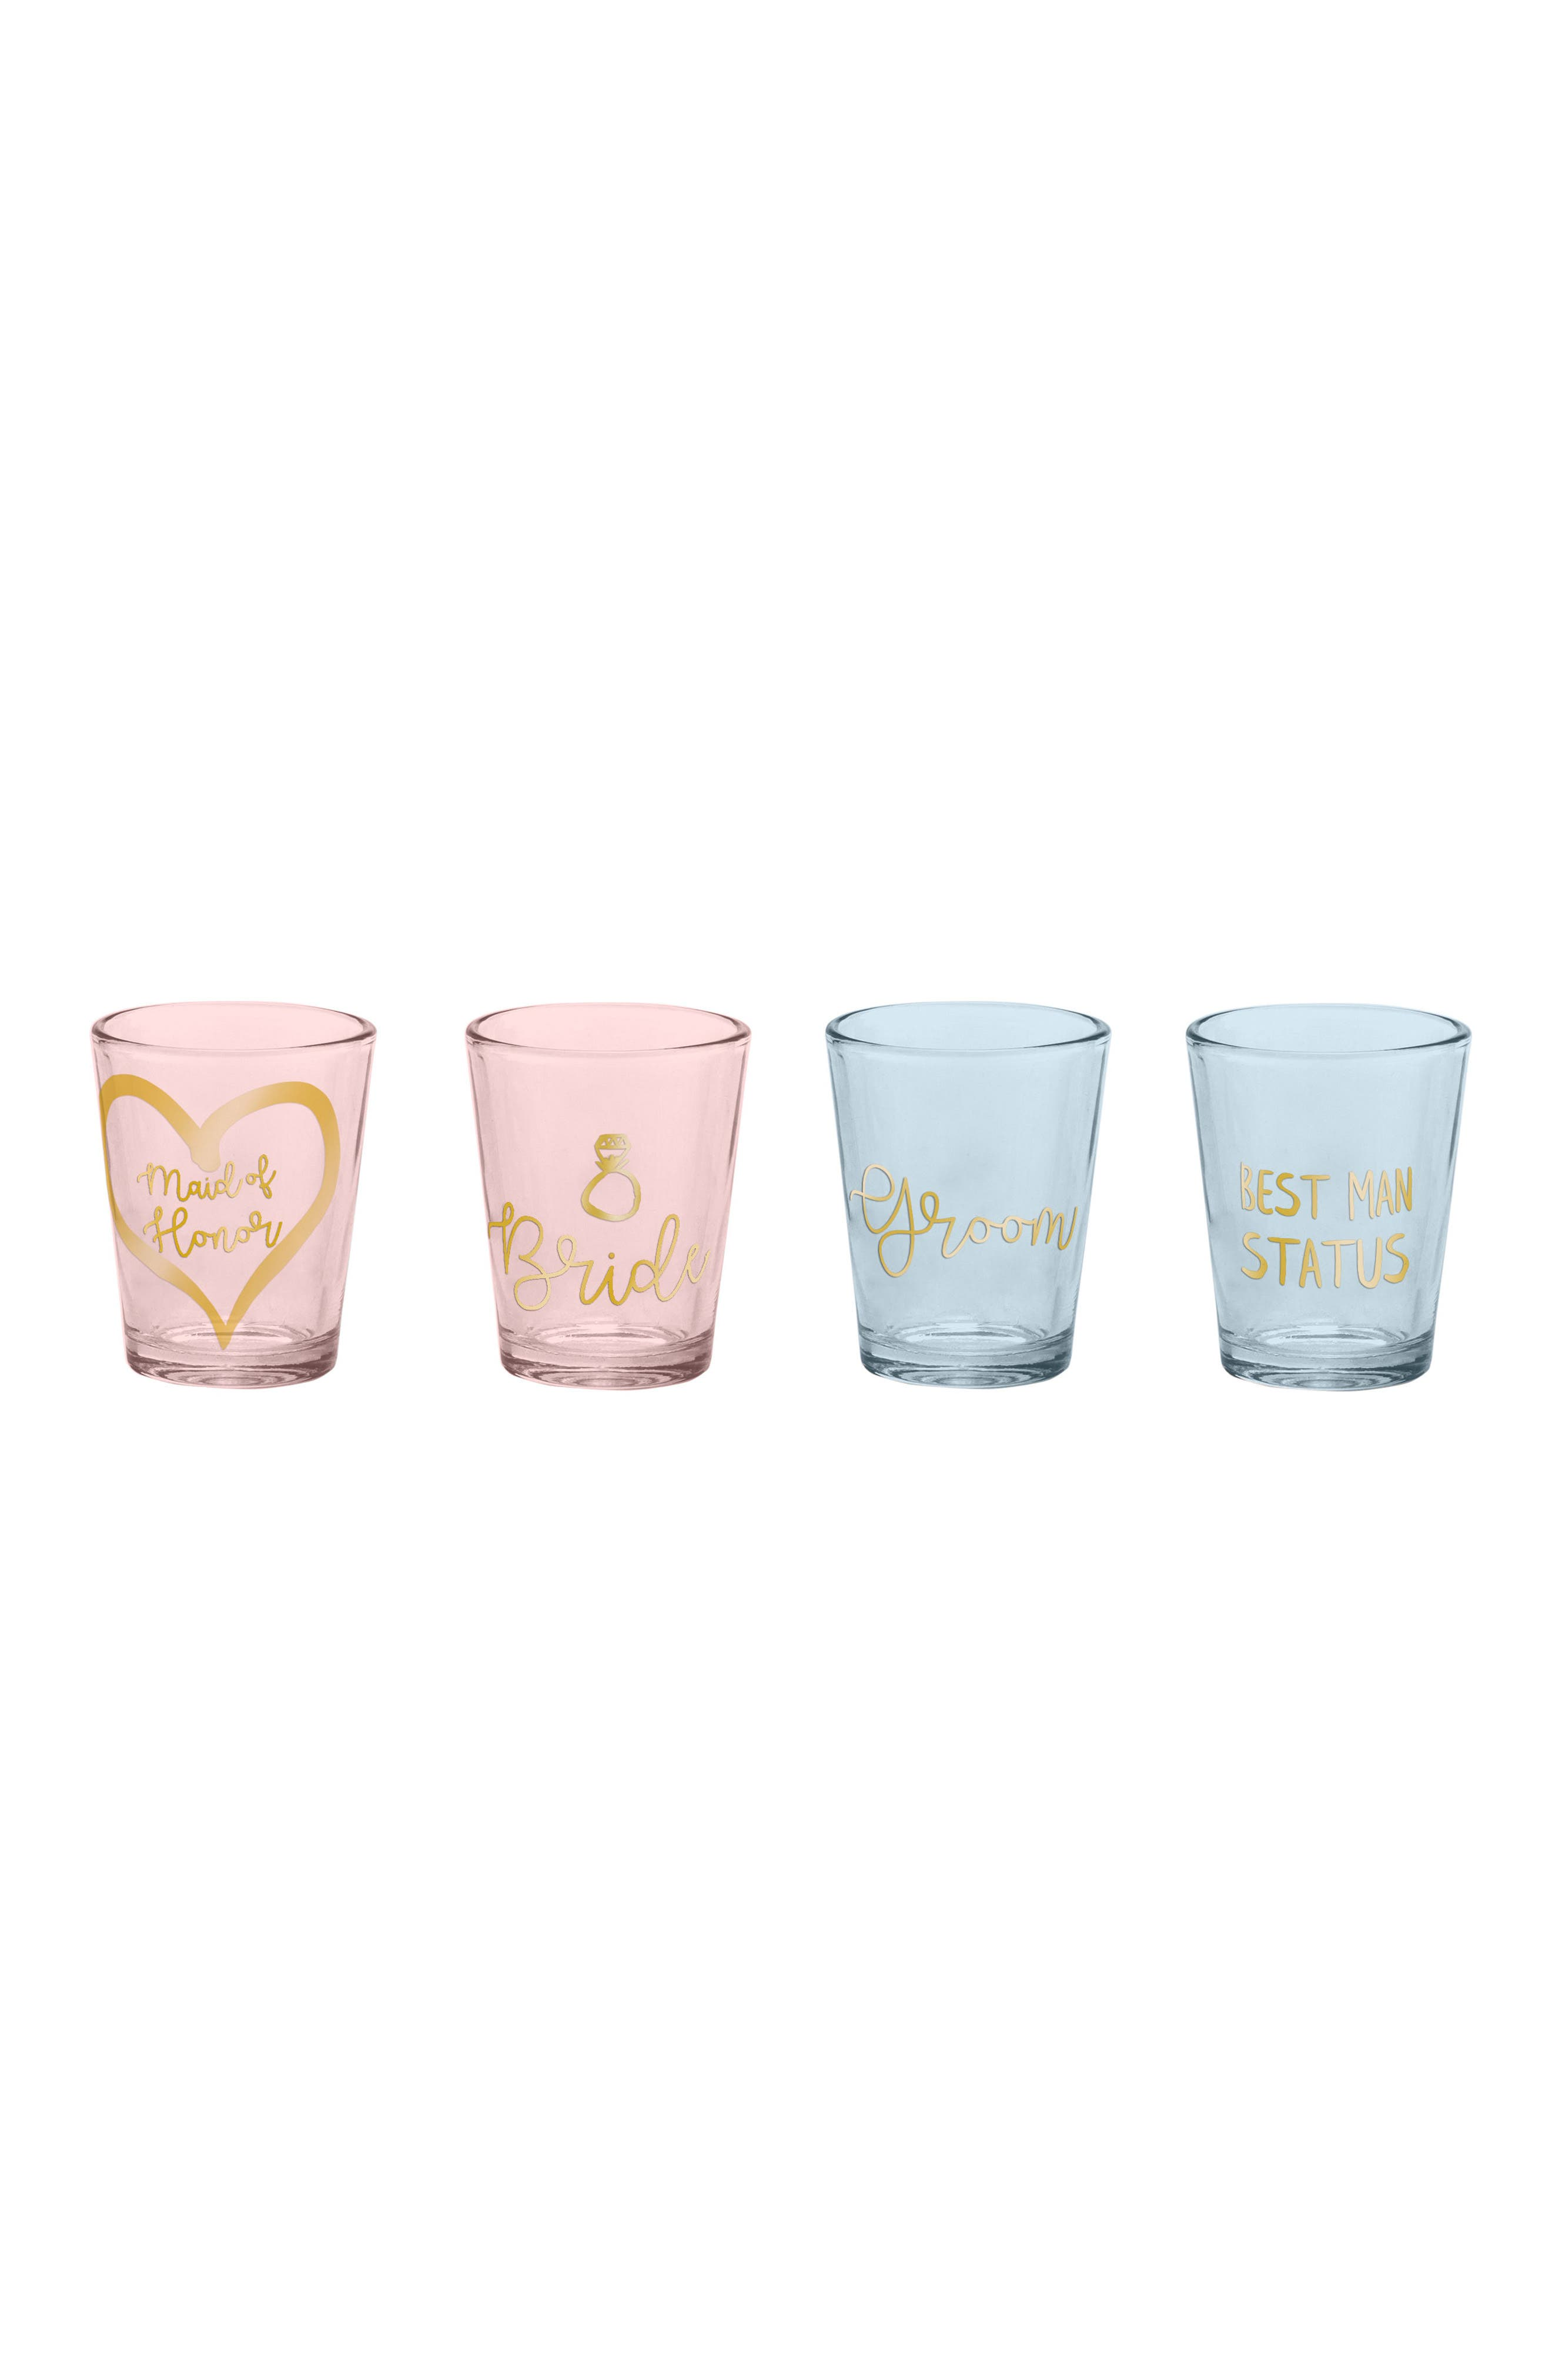 Wedding Party Set of 4 Shot Glasses,                         Main,                         color, Pink And Blue